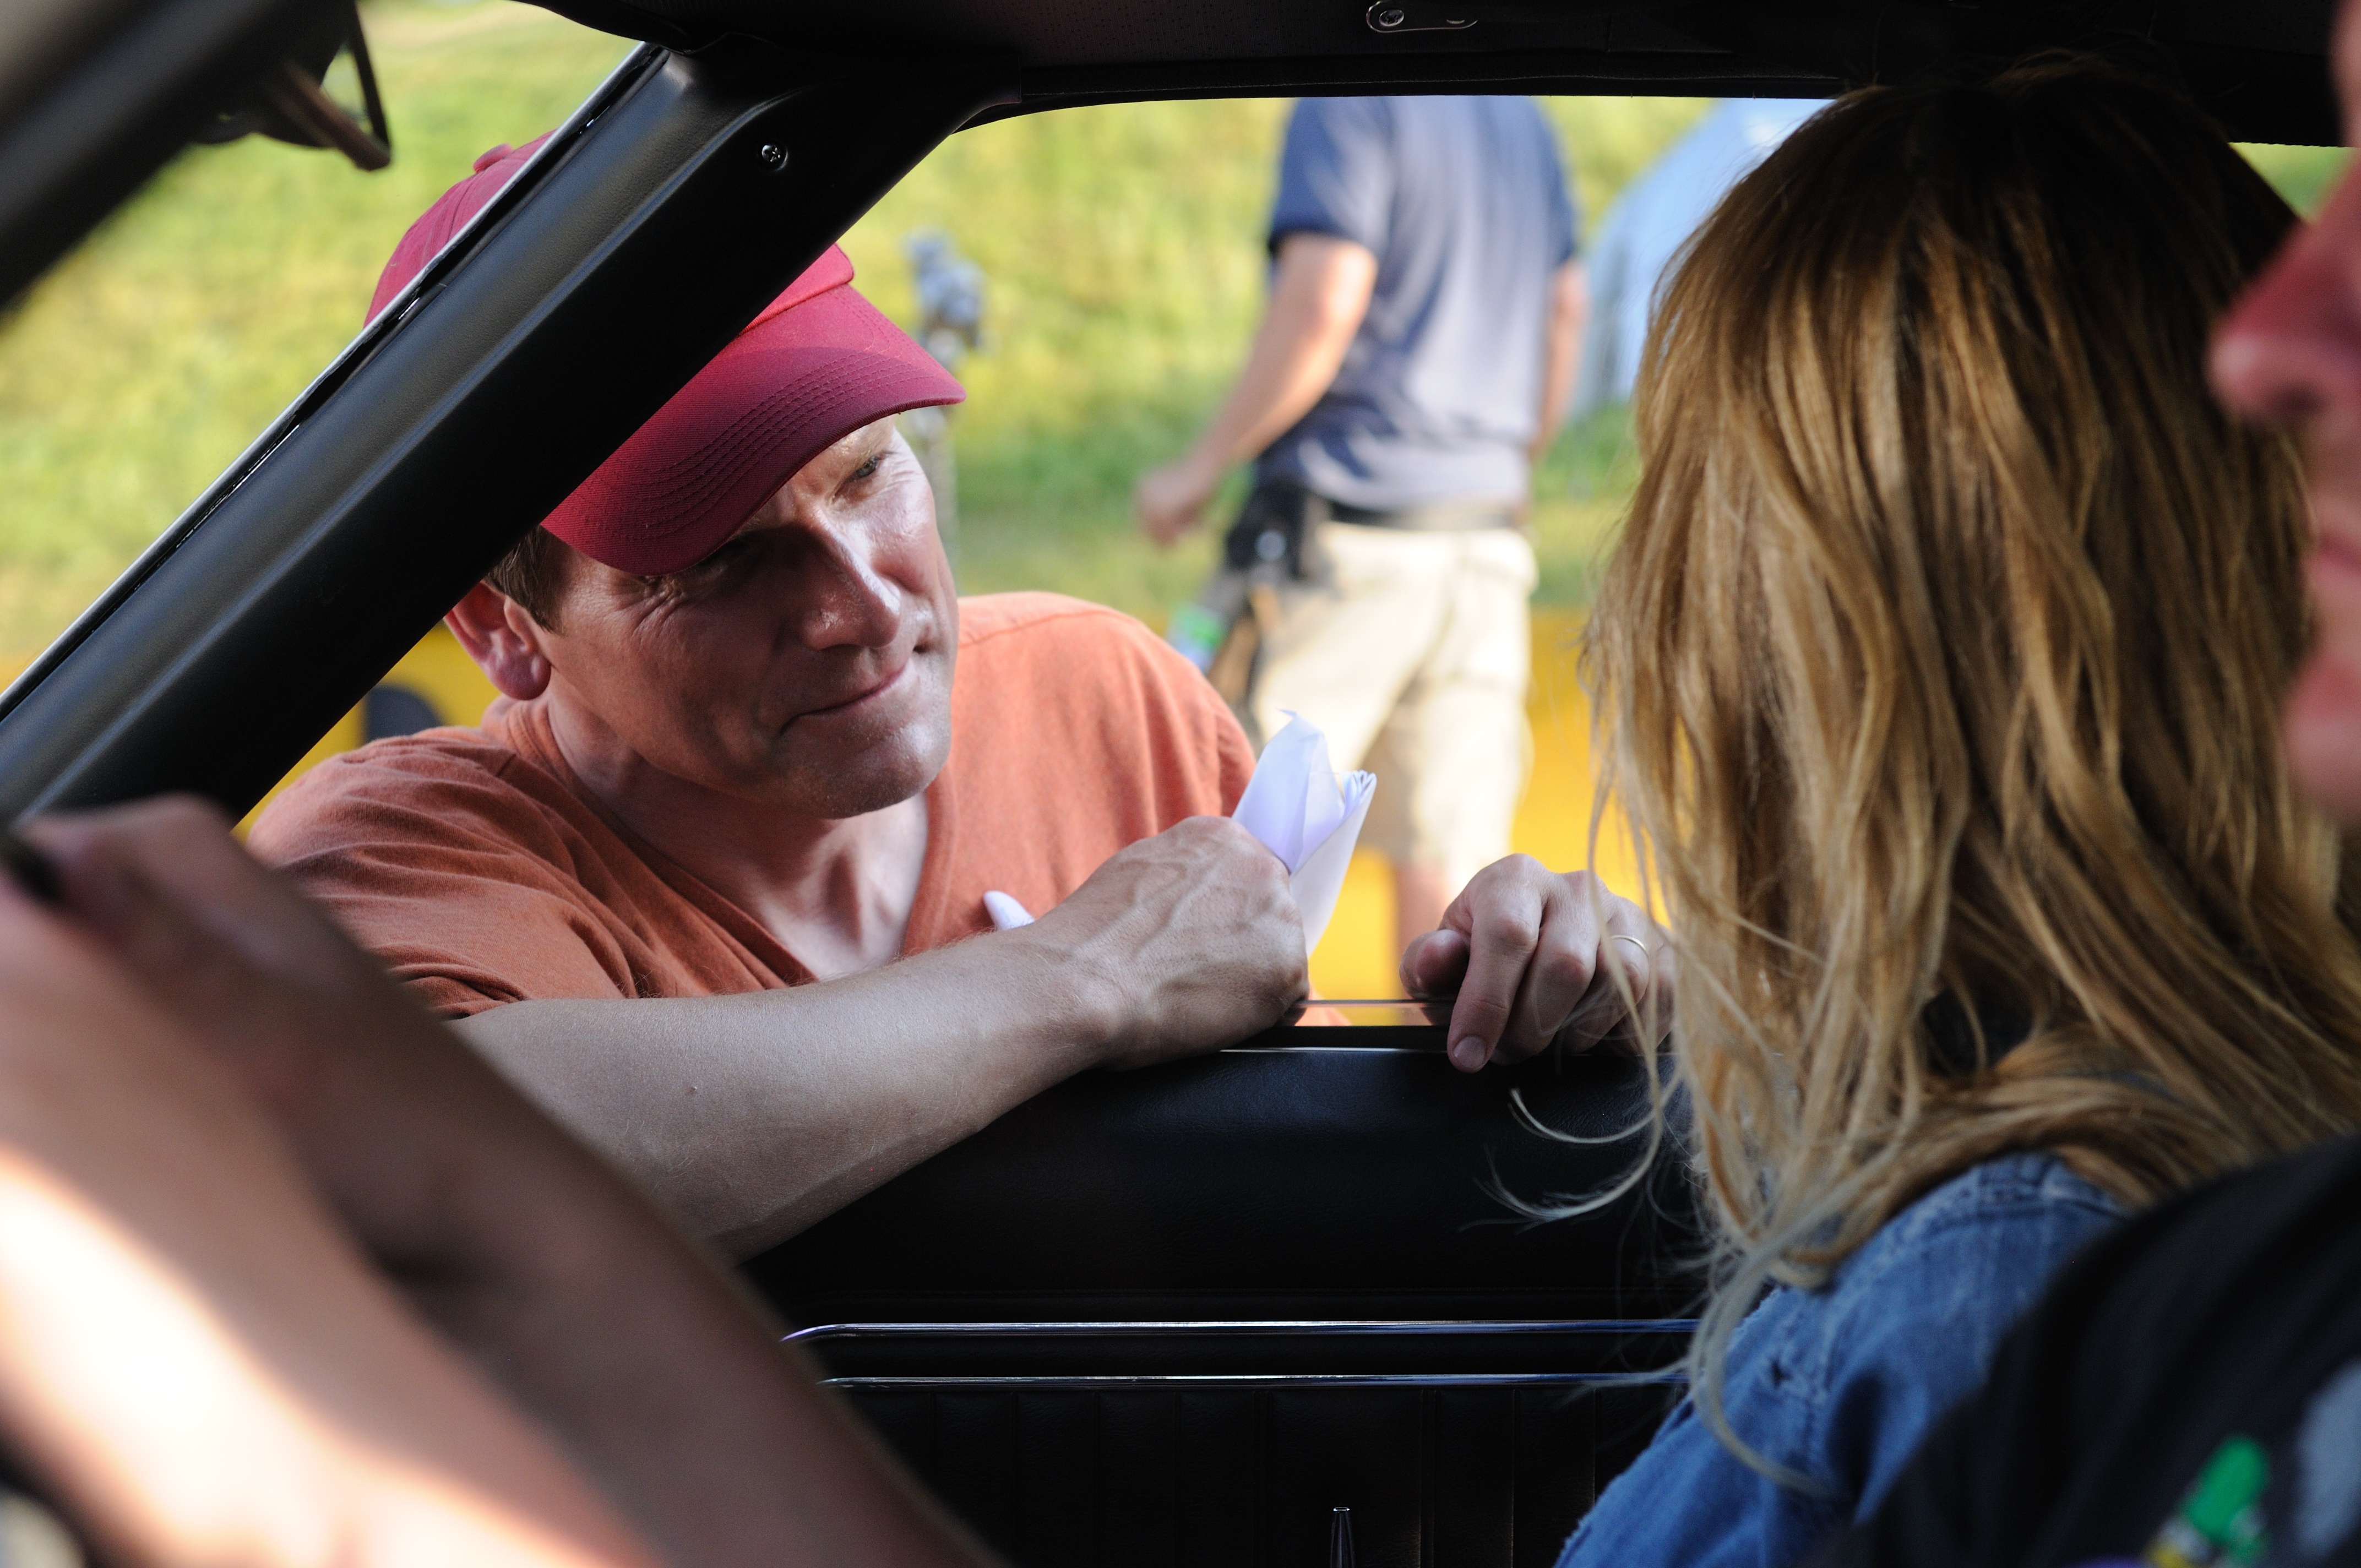 Directing Amber Drive Angry